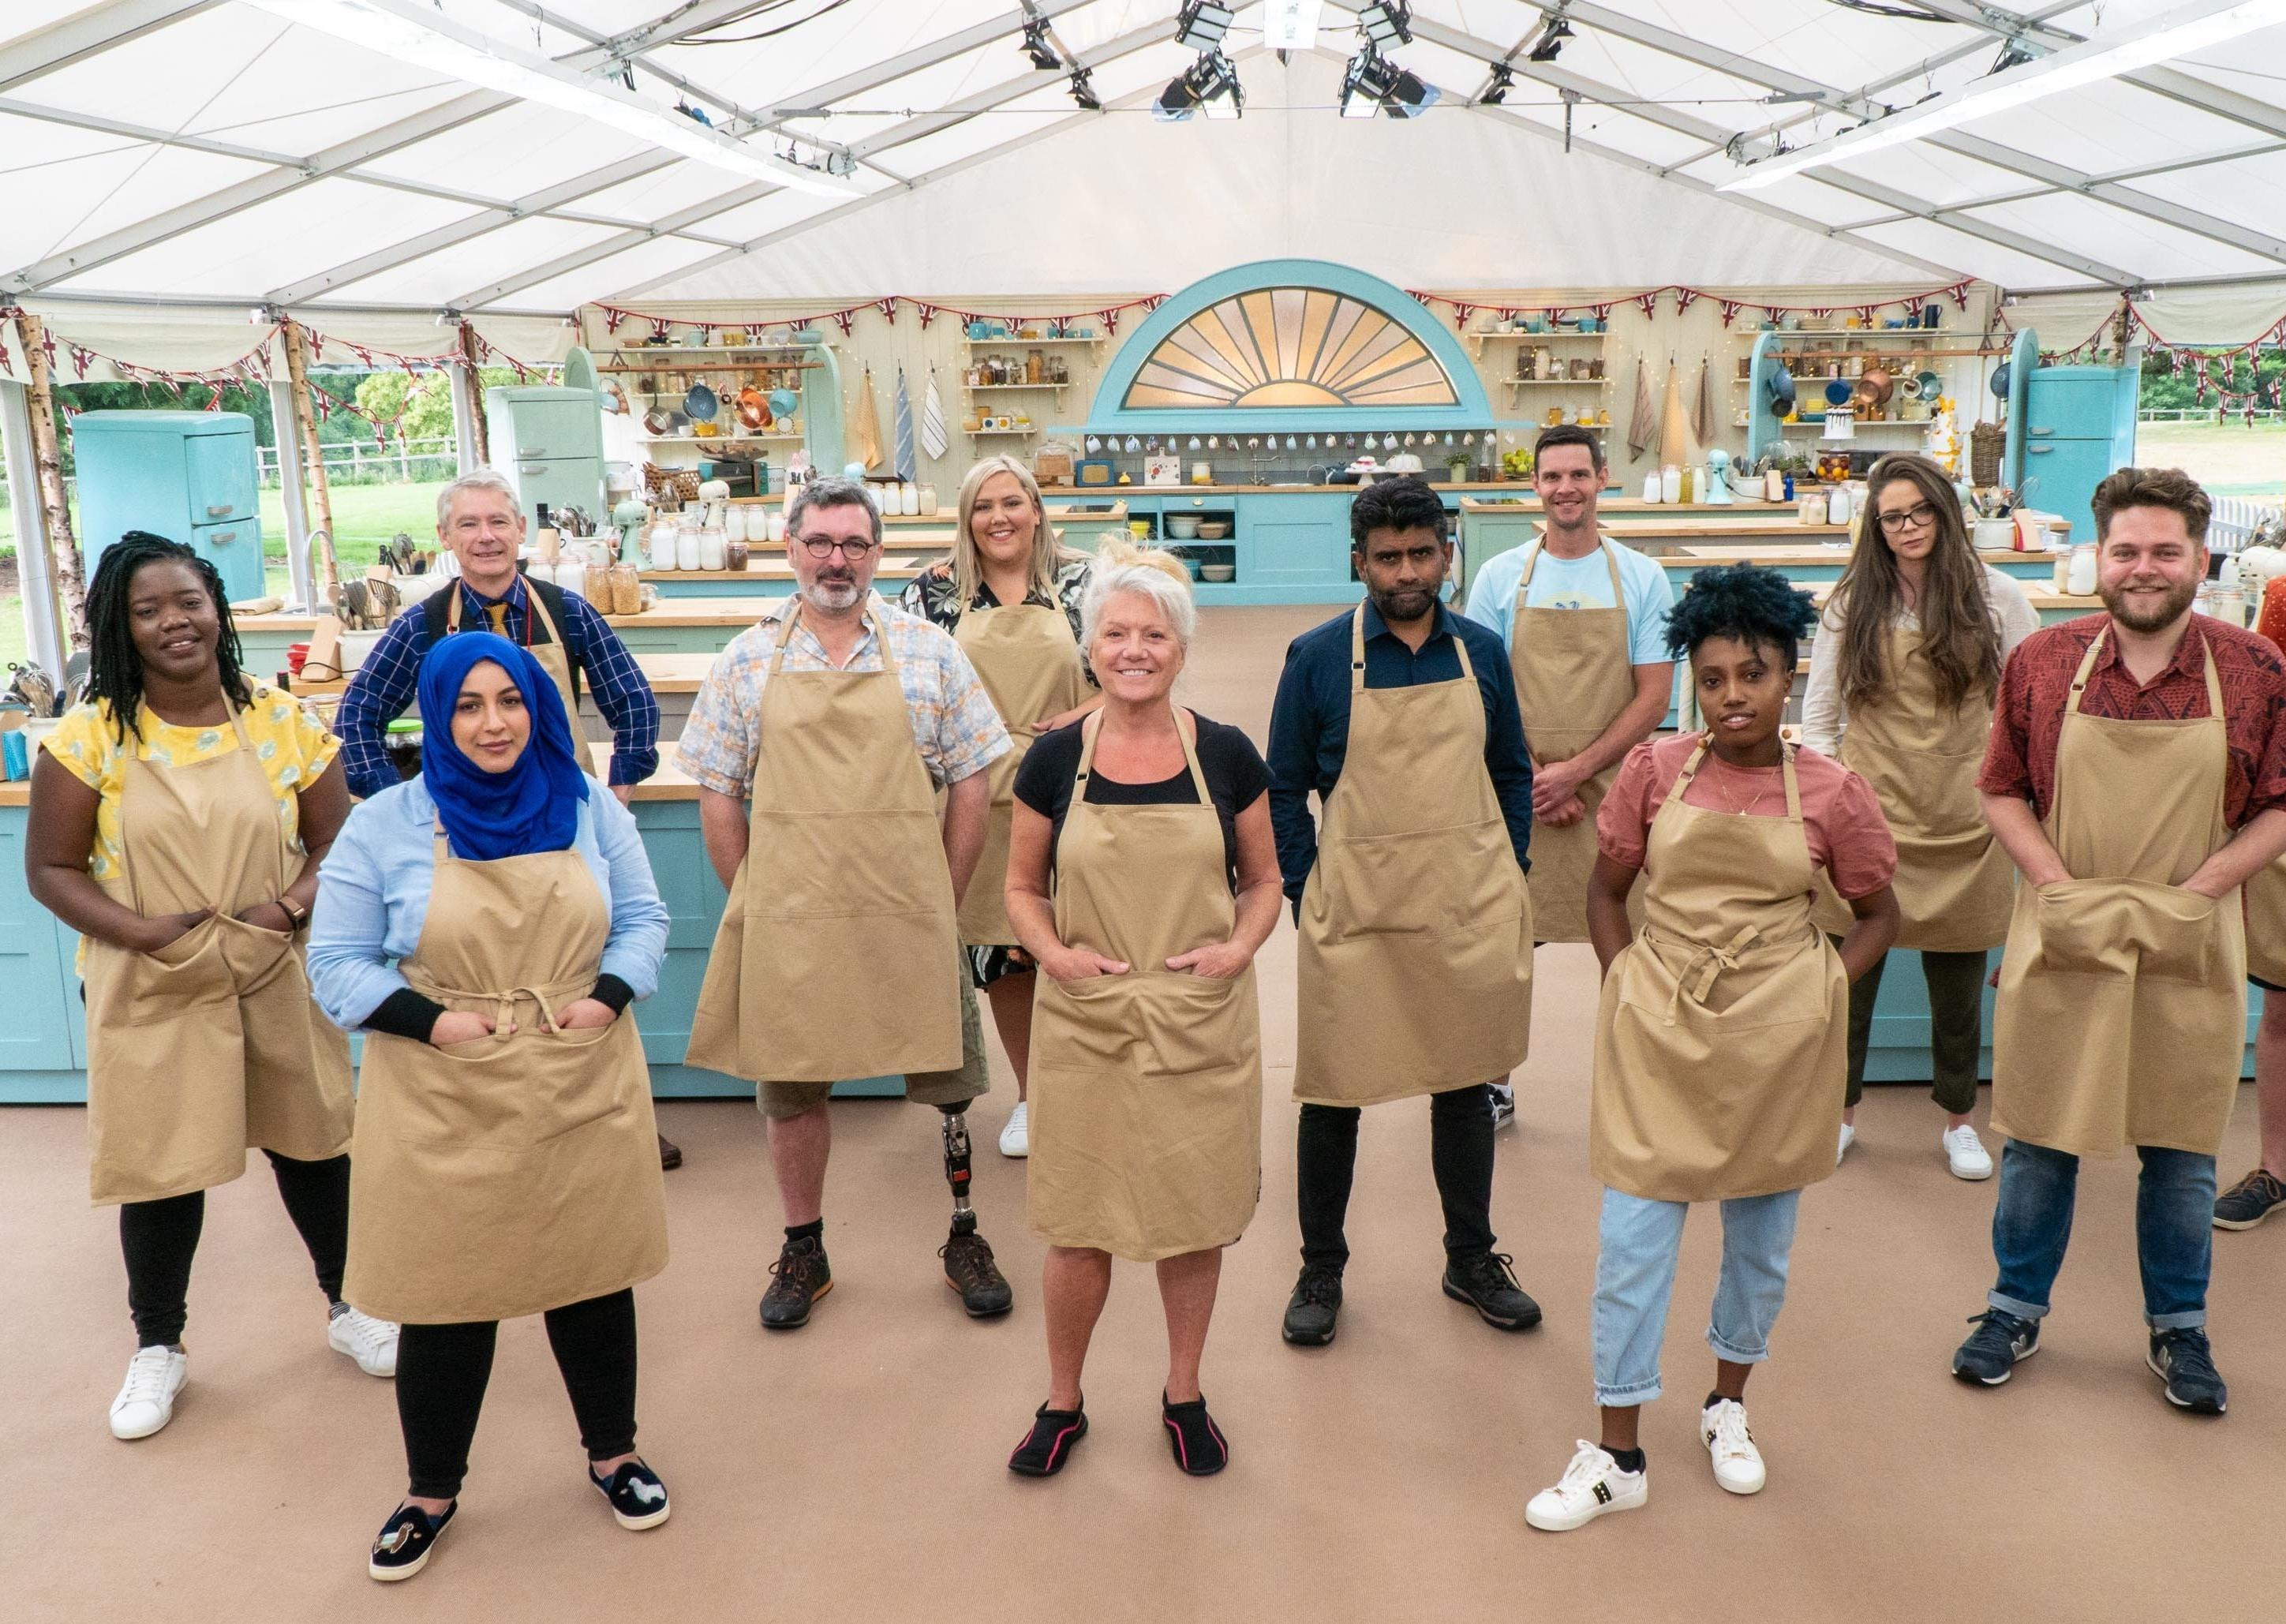 Baking in a bubble: How the Great British Bake Off was made during lockdown